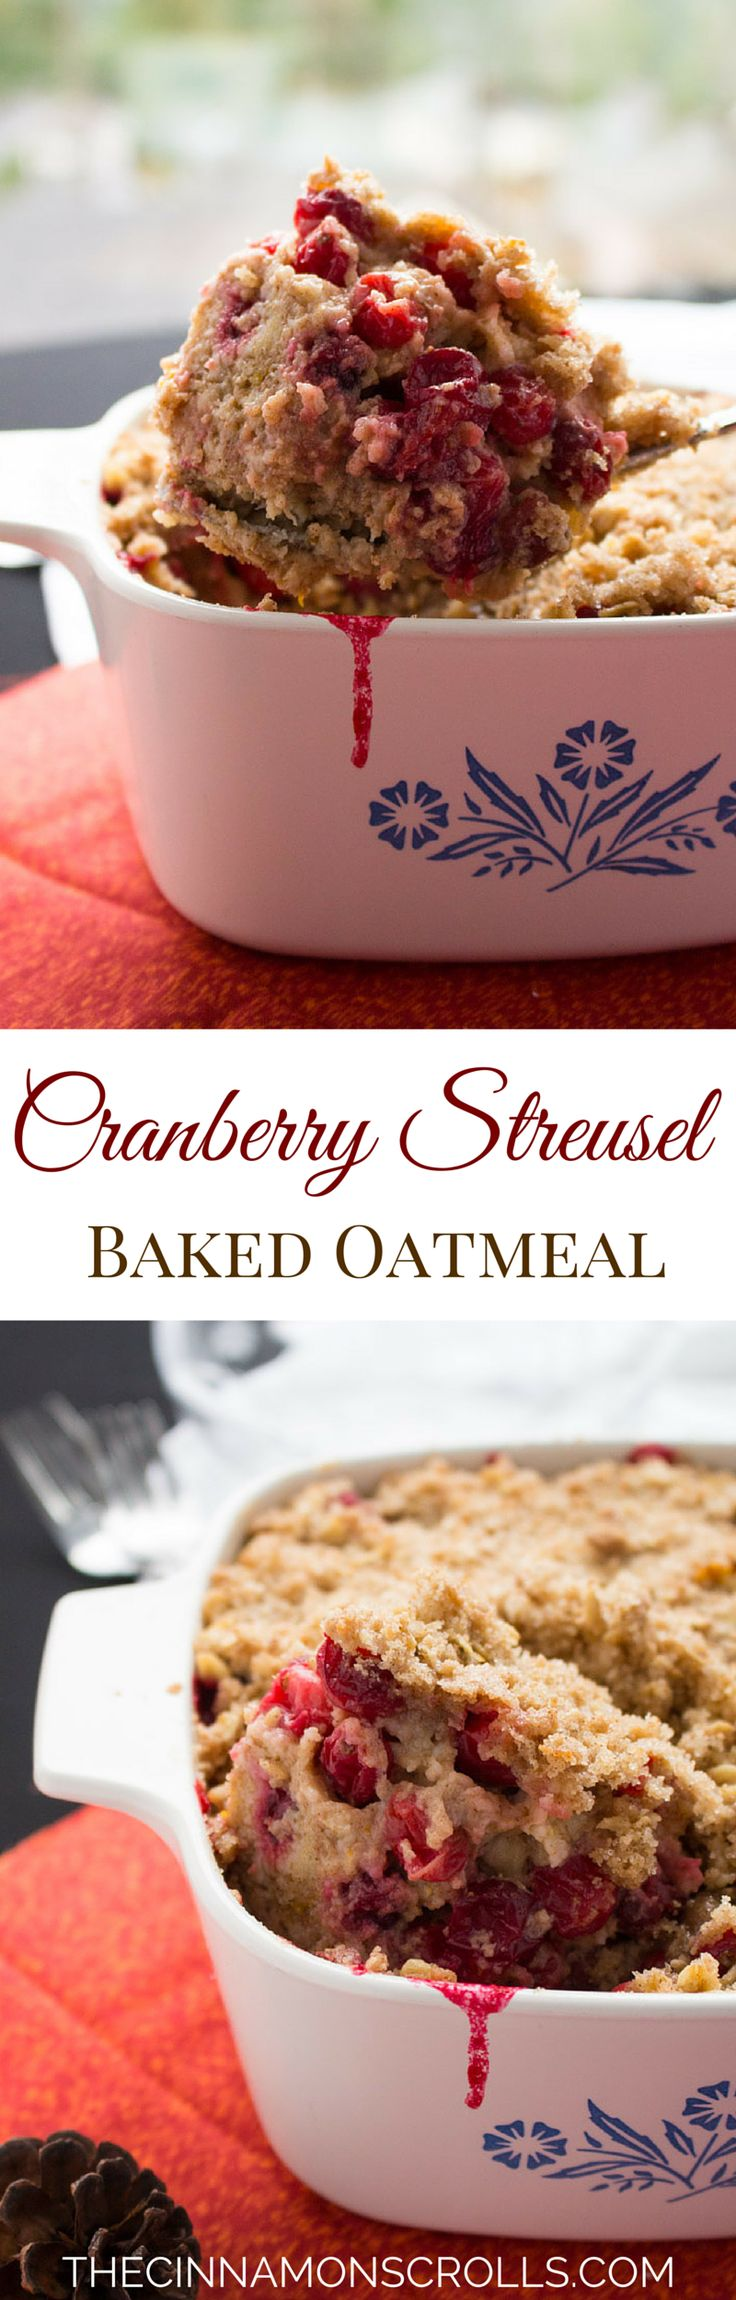 This decadent baked oatmeal, bursting with tart, fresh cranberries, orange zest, ginger, and a crunchy streusel topping, makes a perfect Christmas morning brunch! | thecinnamonscrolls.com @cinnamonscribe